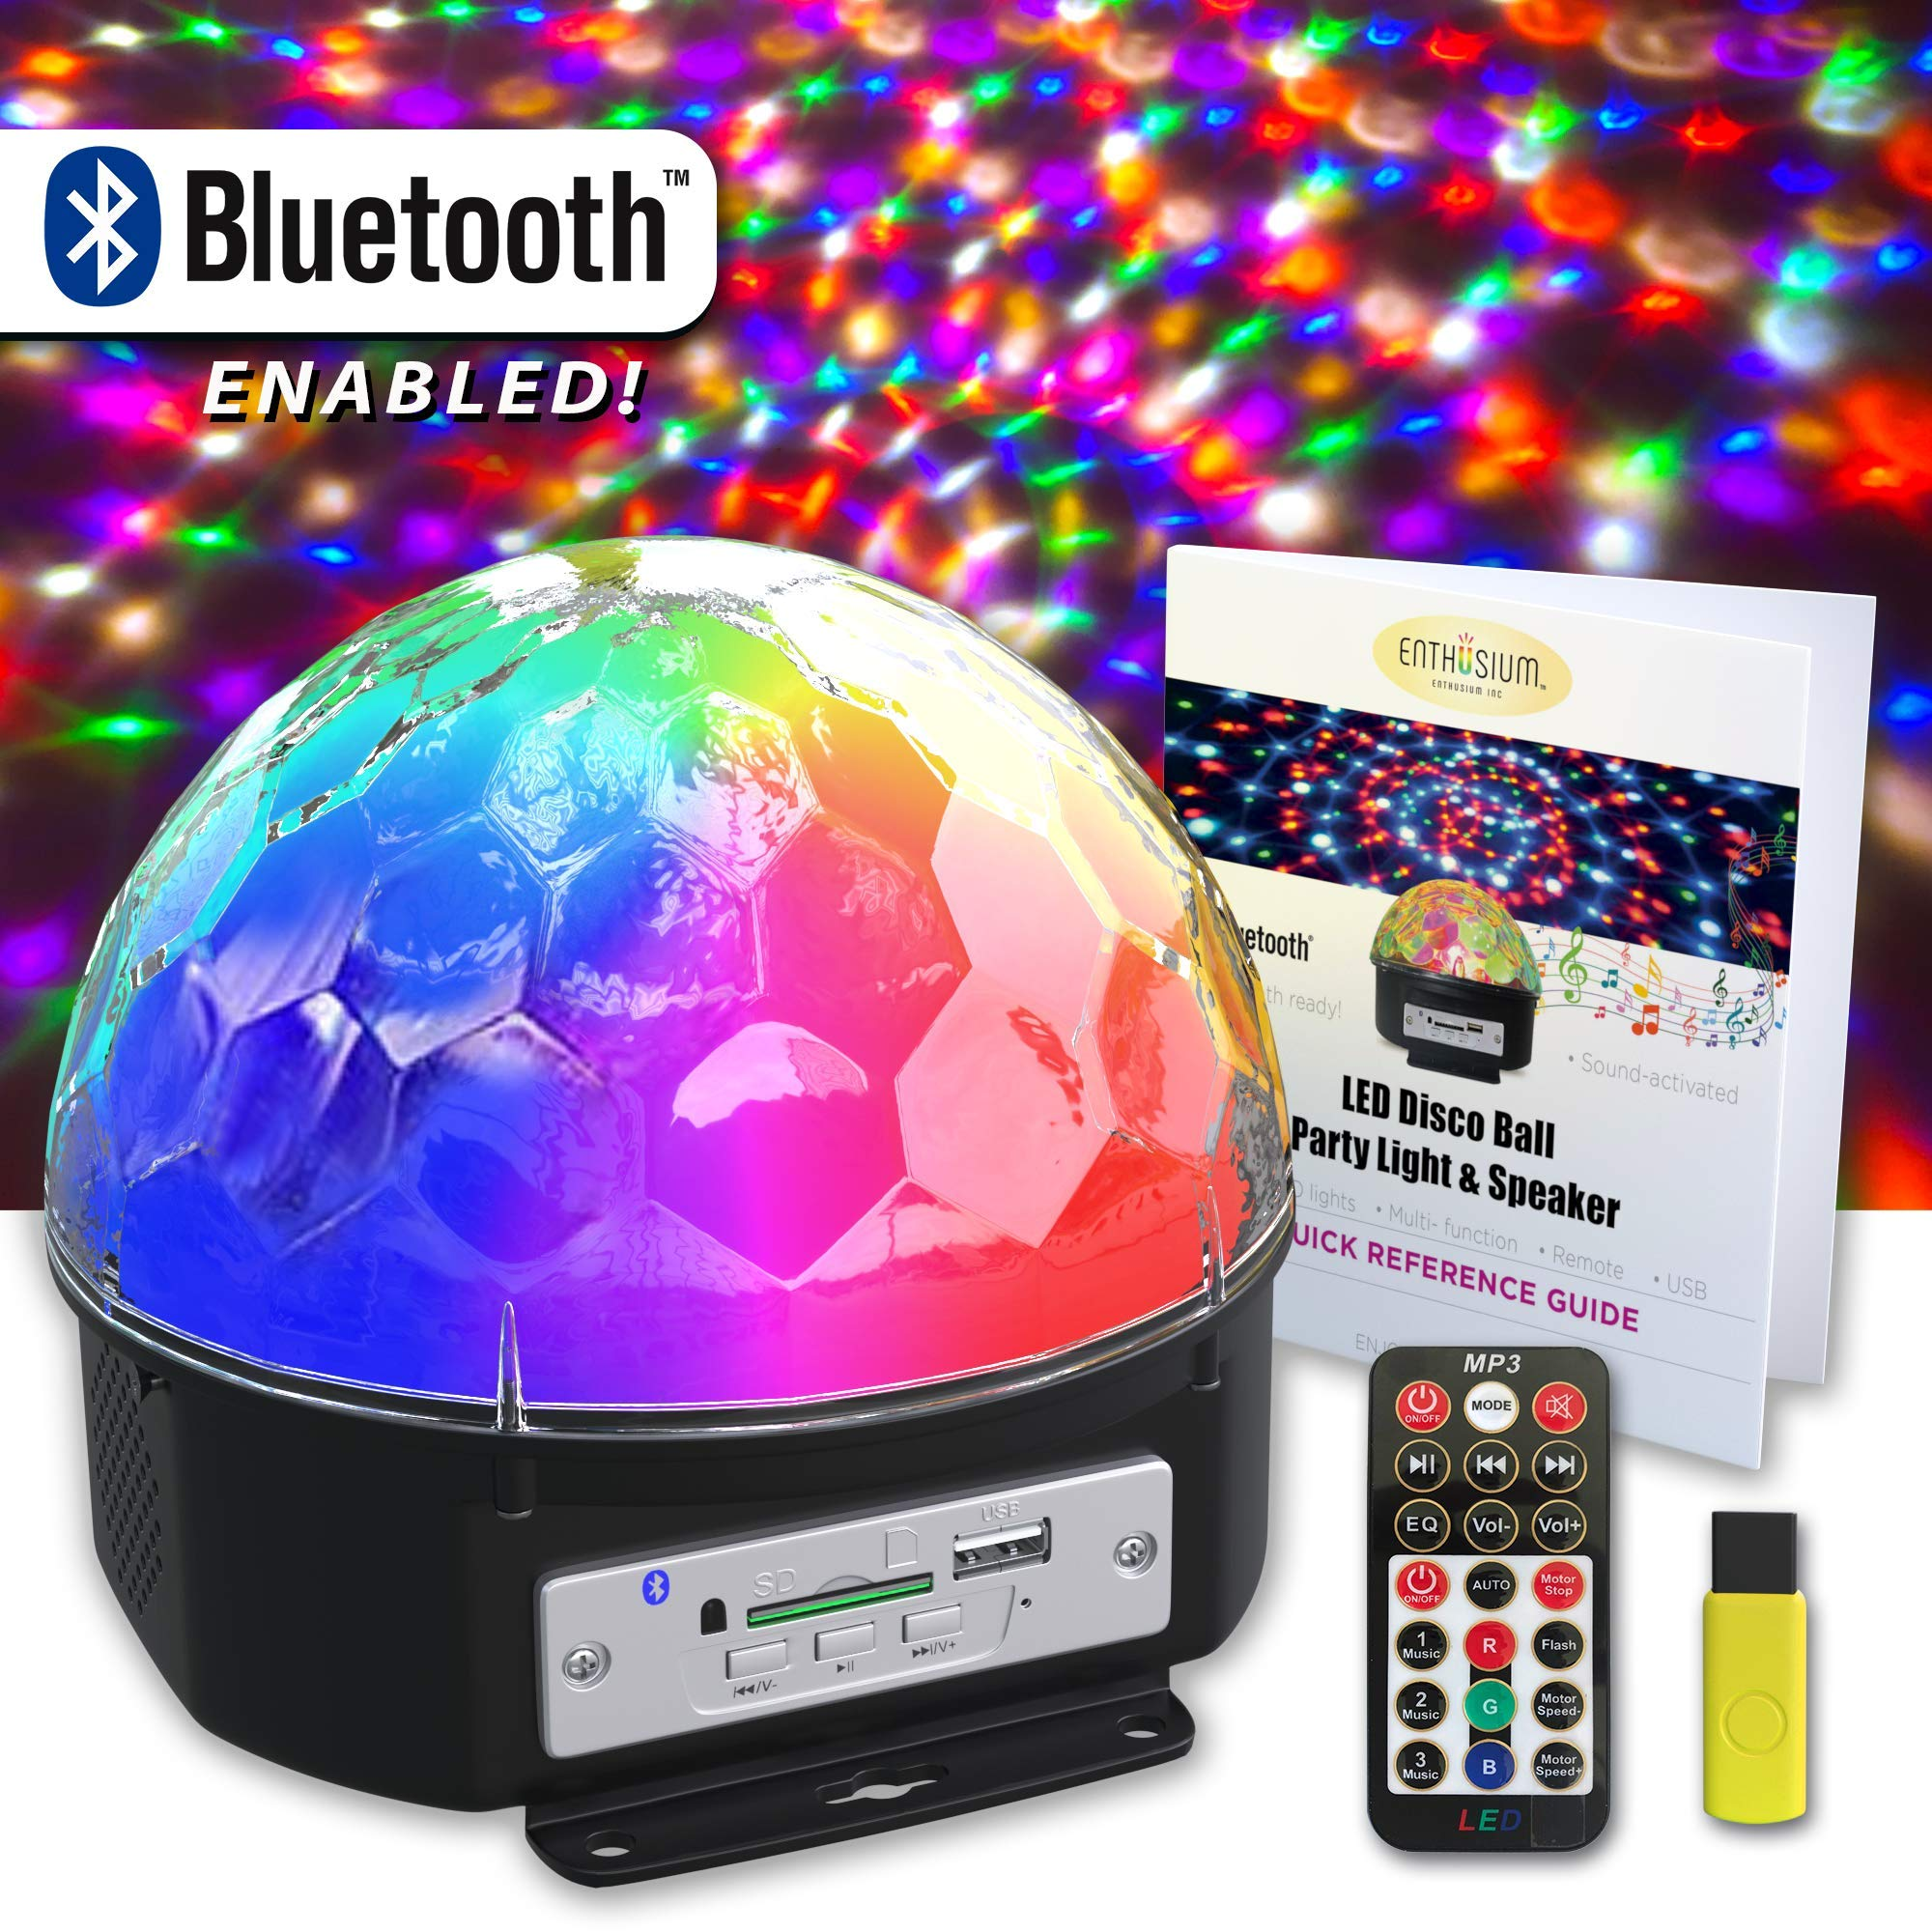 Enthusium Disco Party Light Bluetooth Speaker 9 Color LED Rotating Sound Activated Strobe with Remote & Quick Reference Guide Magical Lighting for Weddings Parties Bedroom by Enthusium Inc